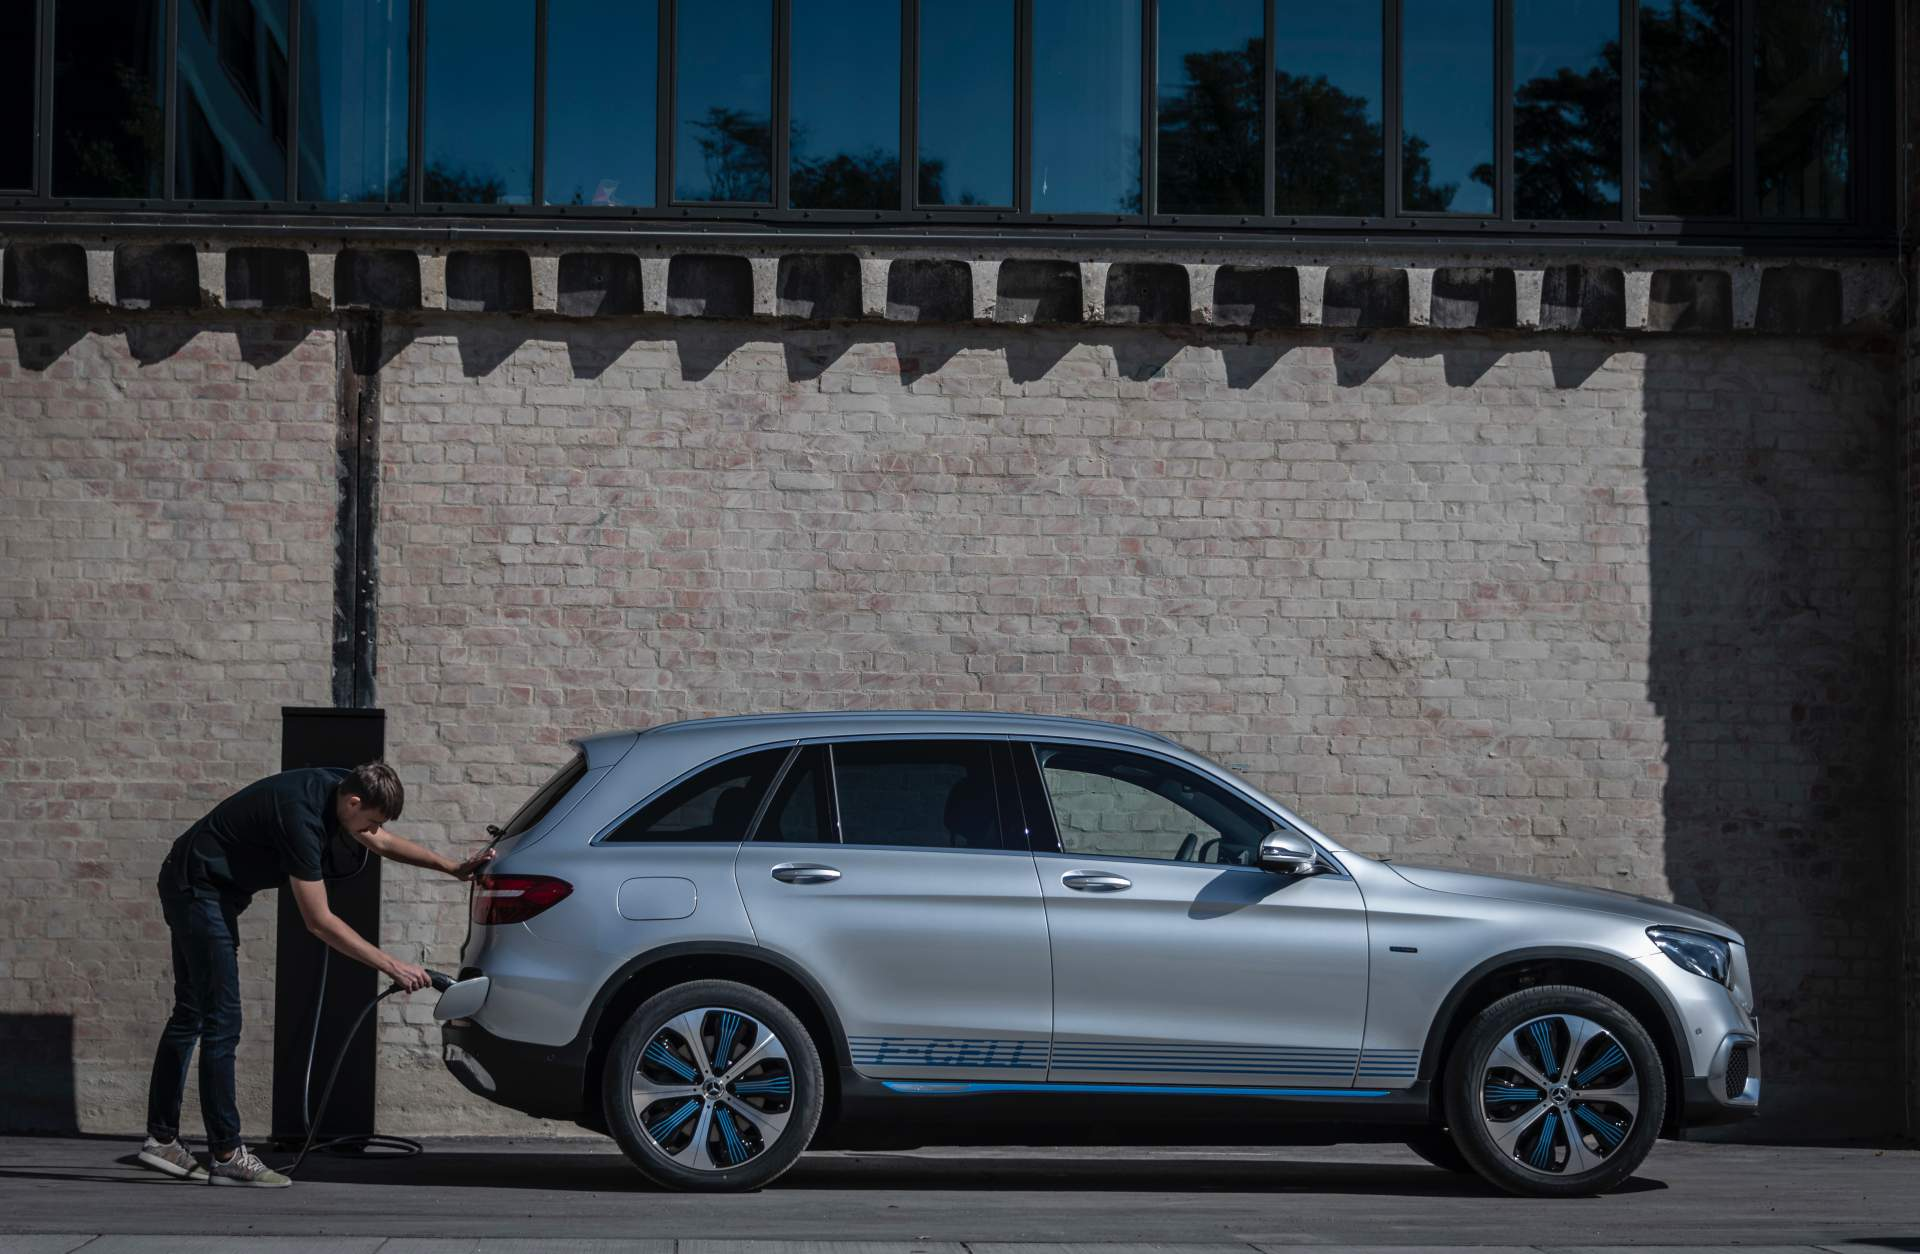 2019_Mercedes_GLC_F-Cell_0079